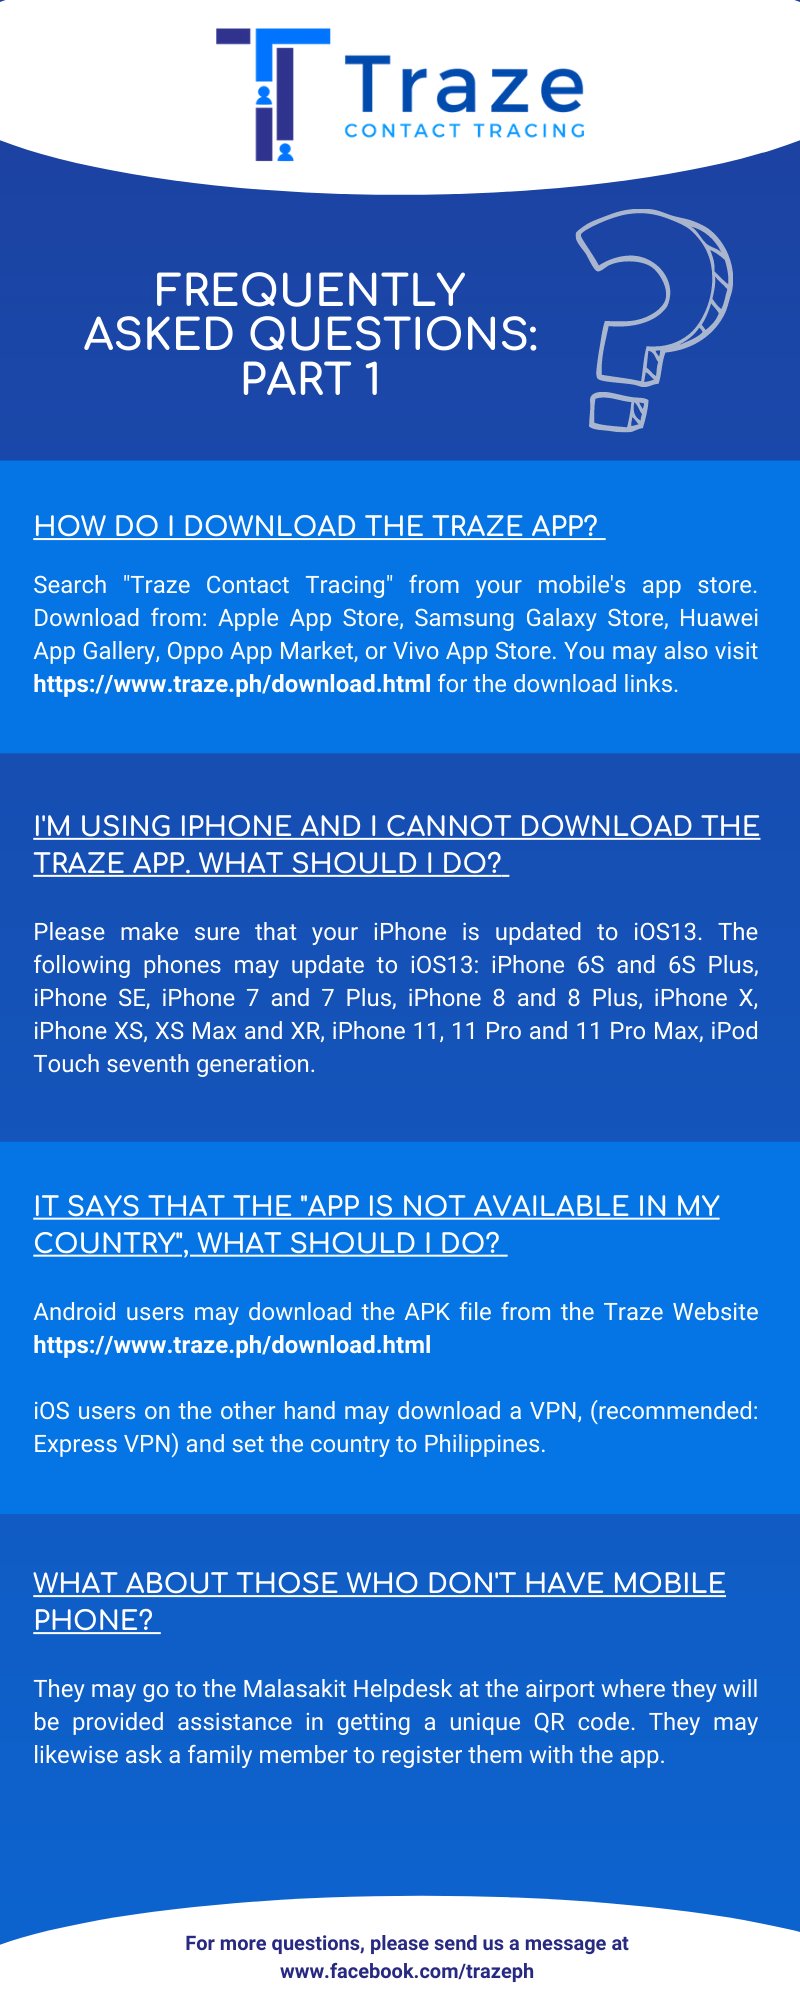 TRAZE APP: How to Download, Register, Activate and Use the Contact Tracing App?